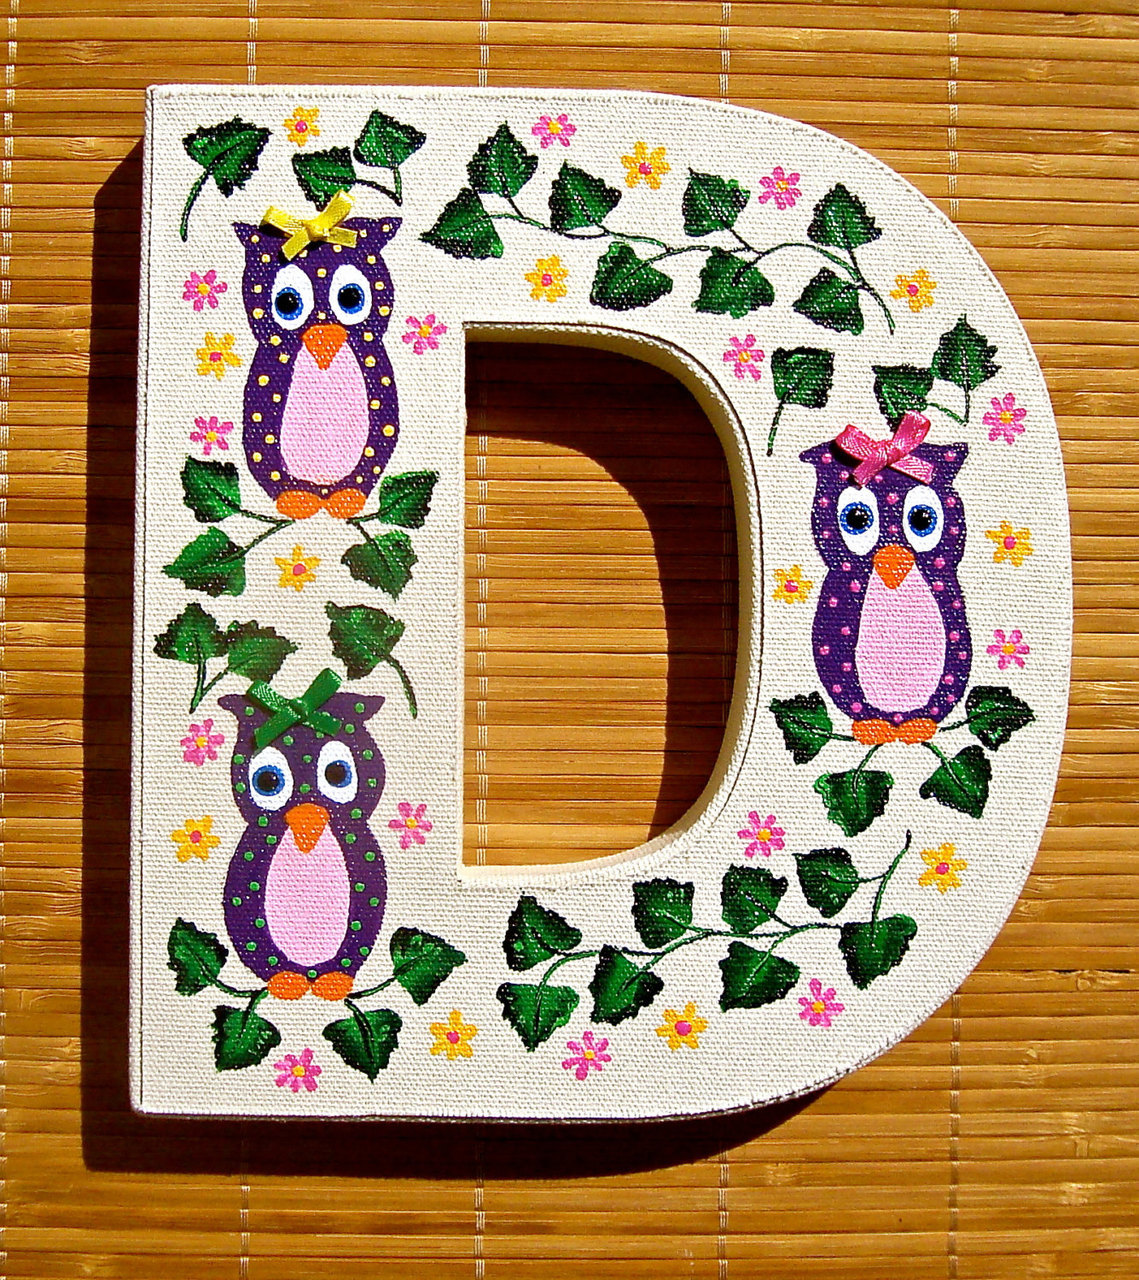 Nursery Decor Painted Letter D With